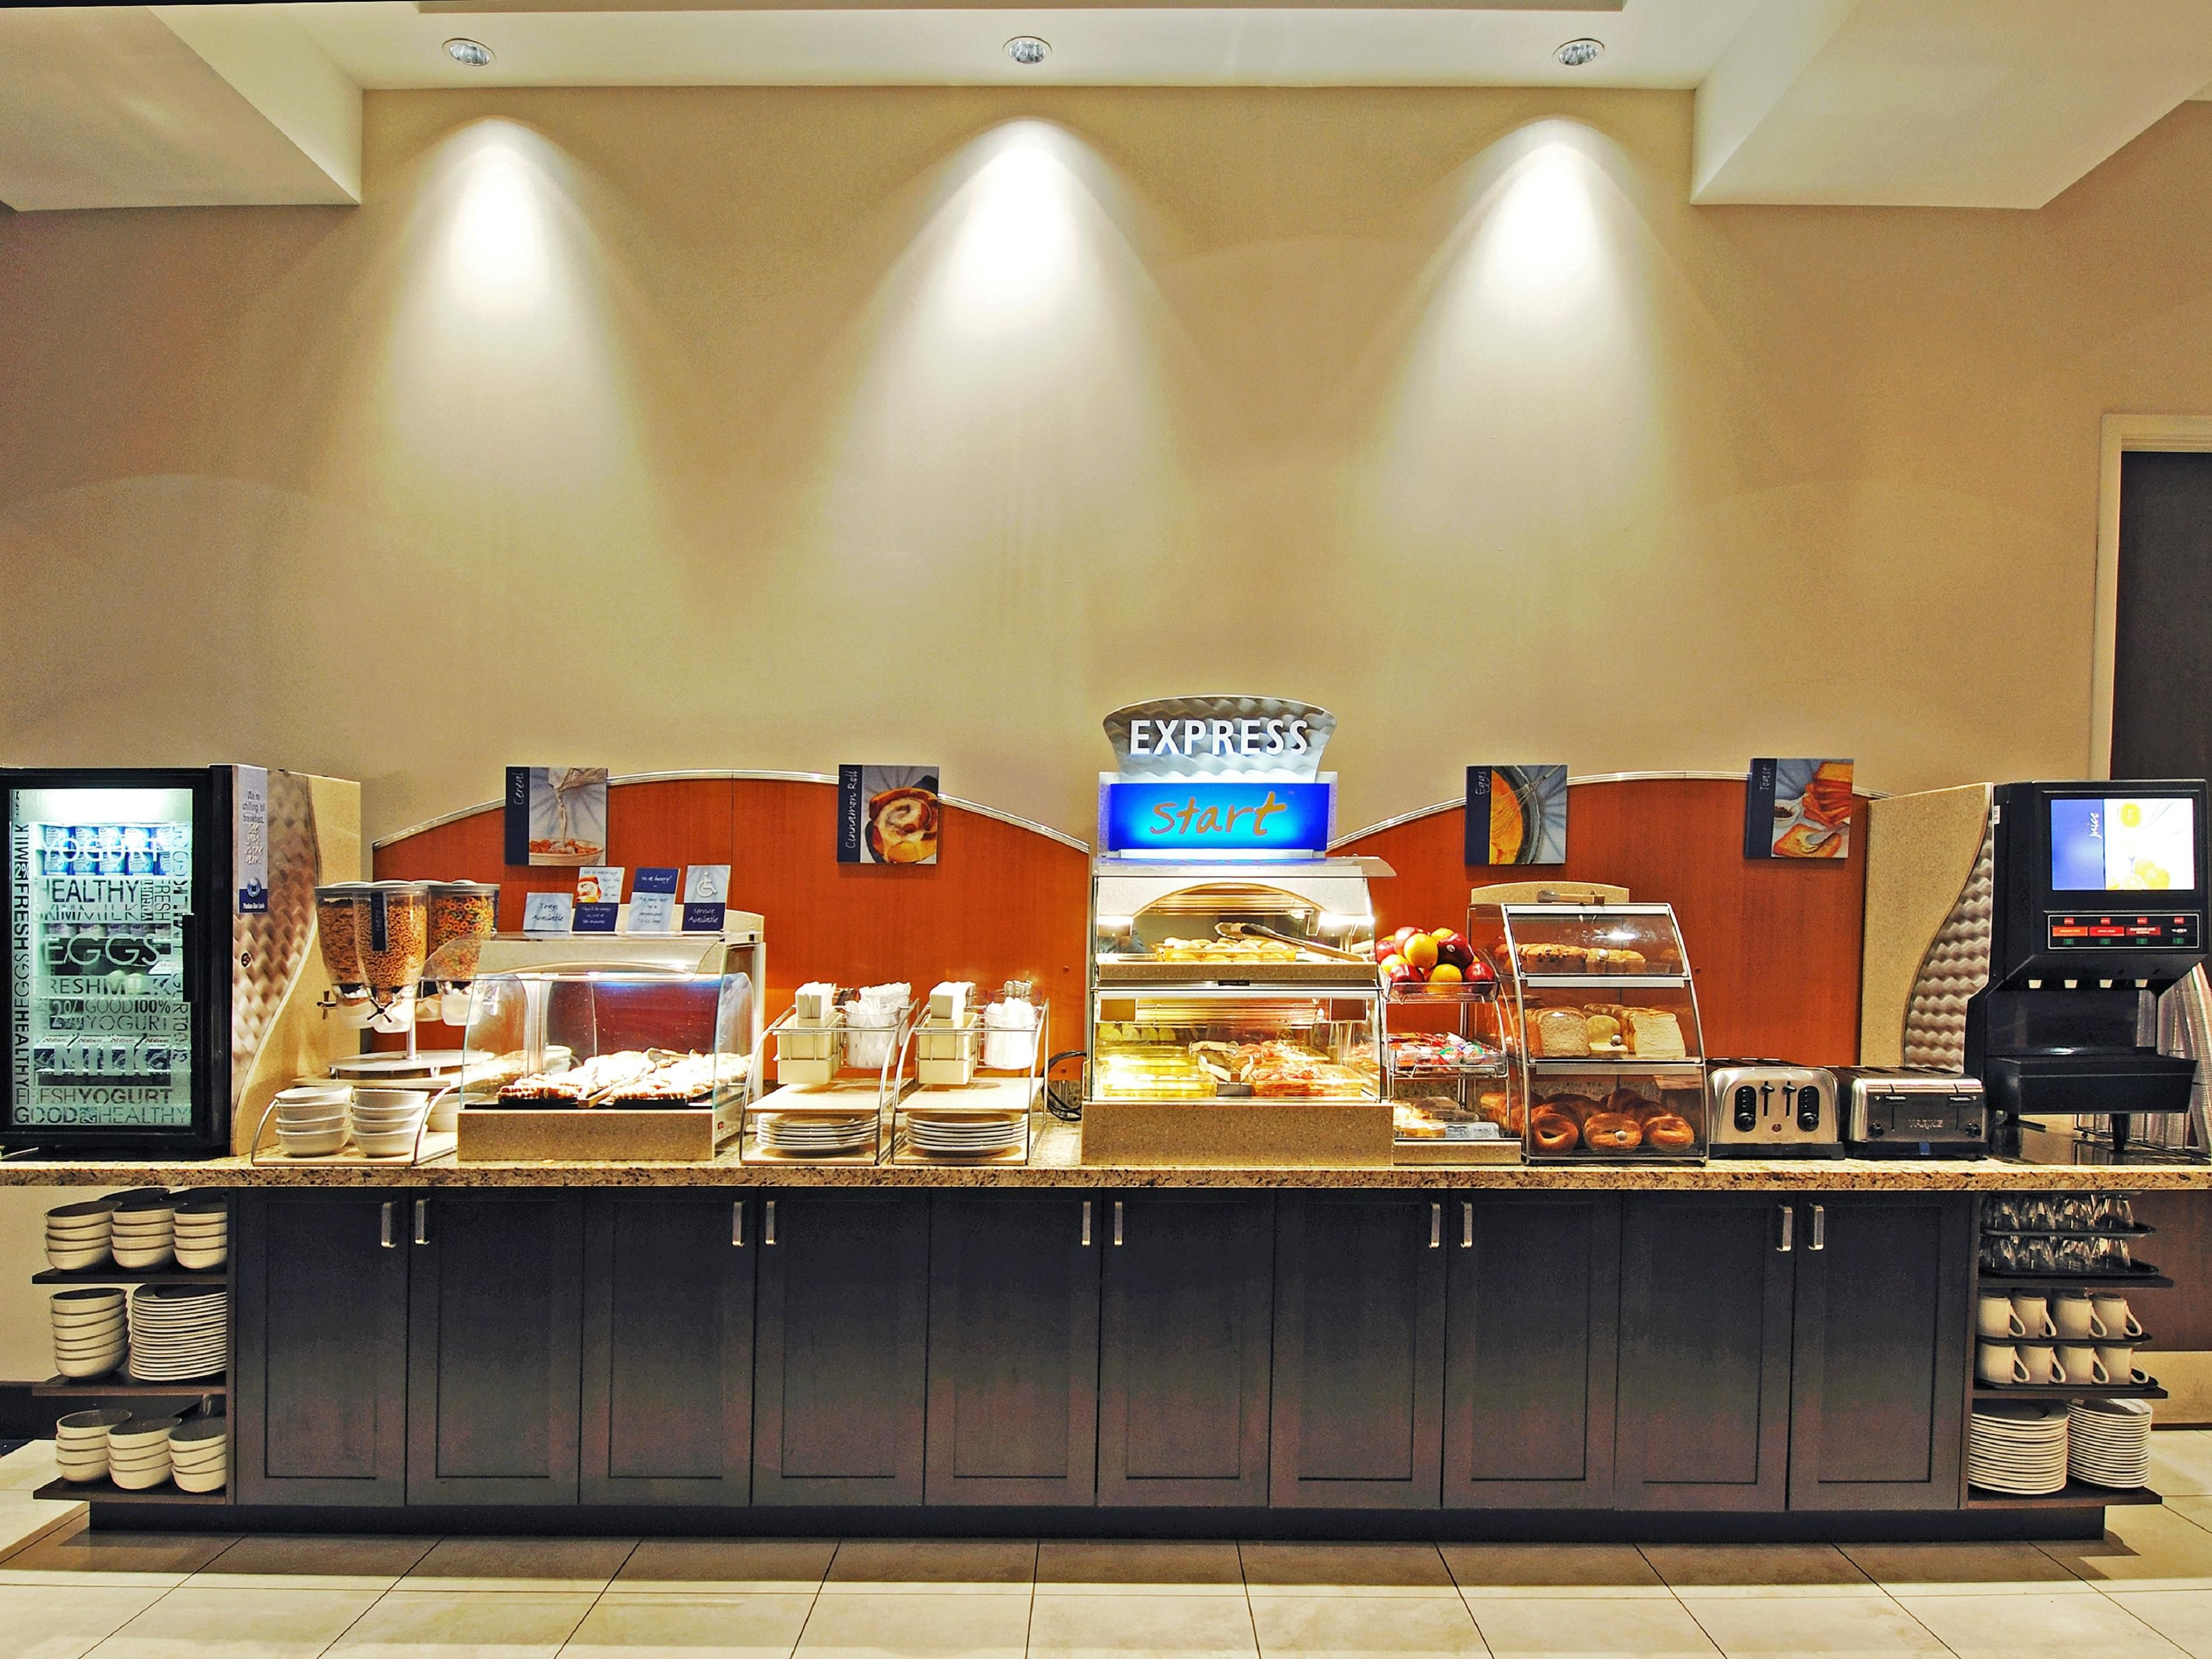 Express Start Breakfast Bar serves a delicious start to your day